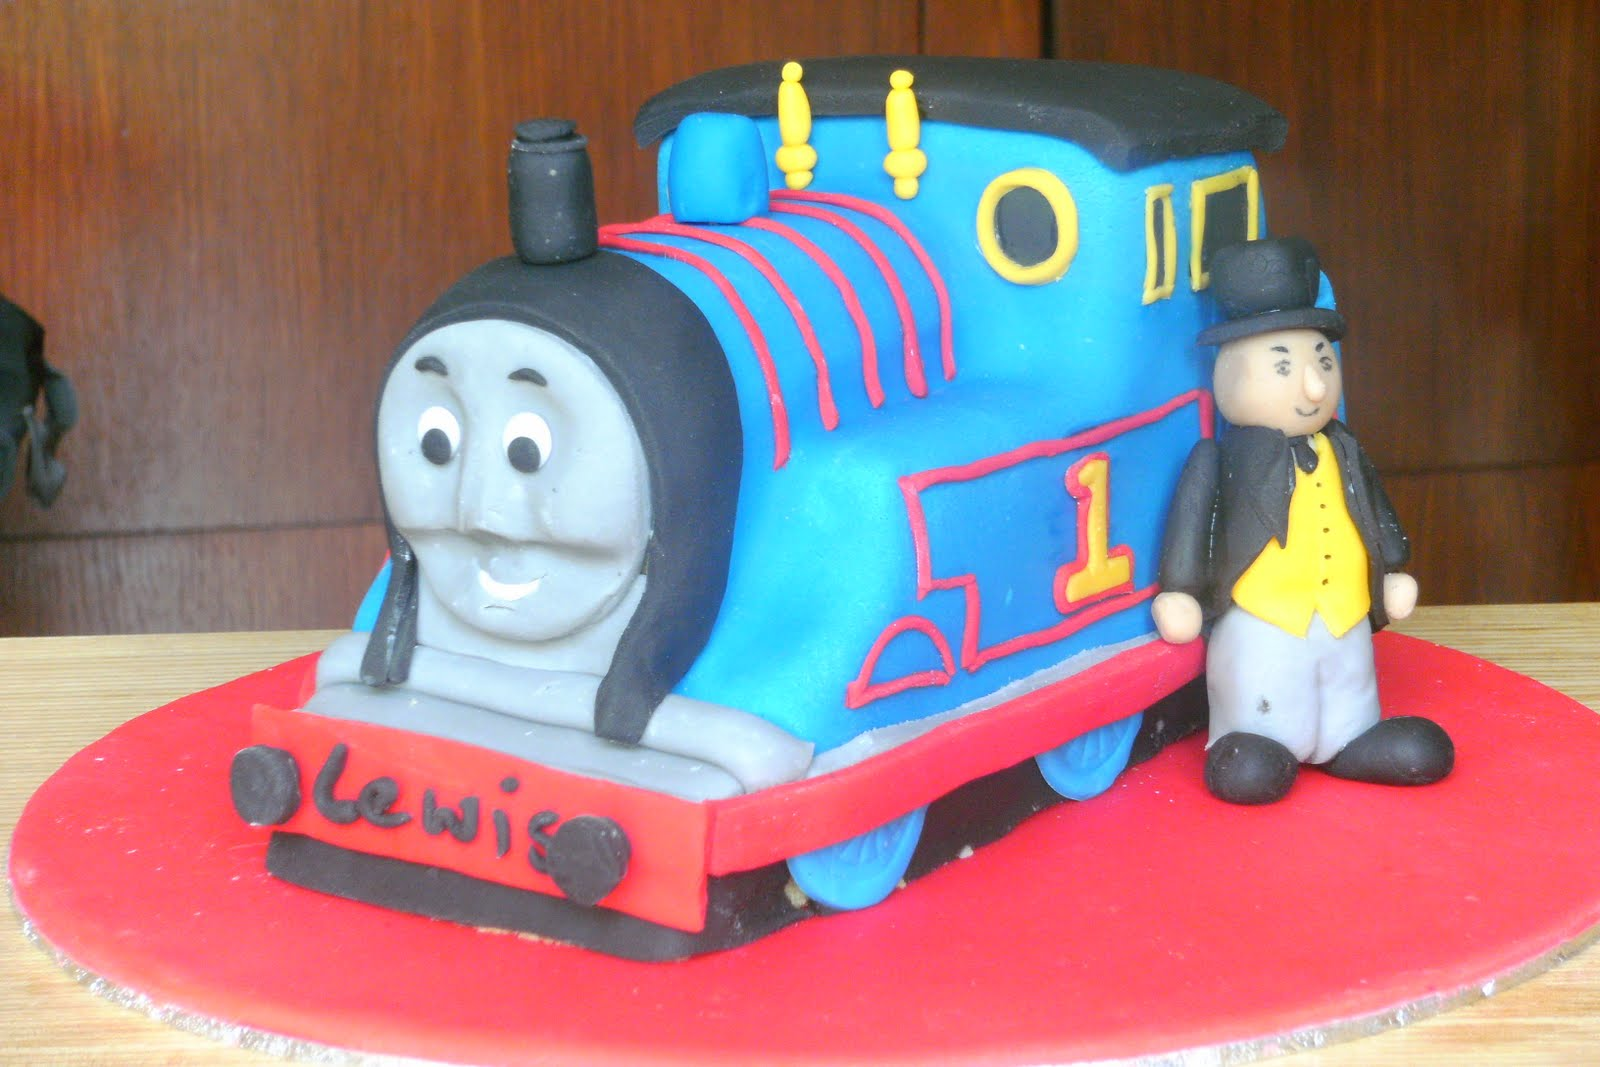 Thomas The Tank Engine Cake - Buy Online, Free UK Delivery ...